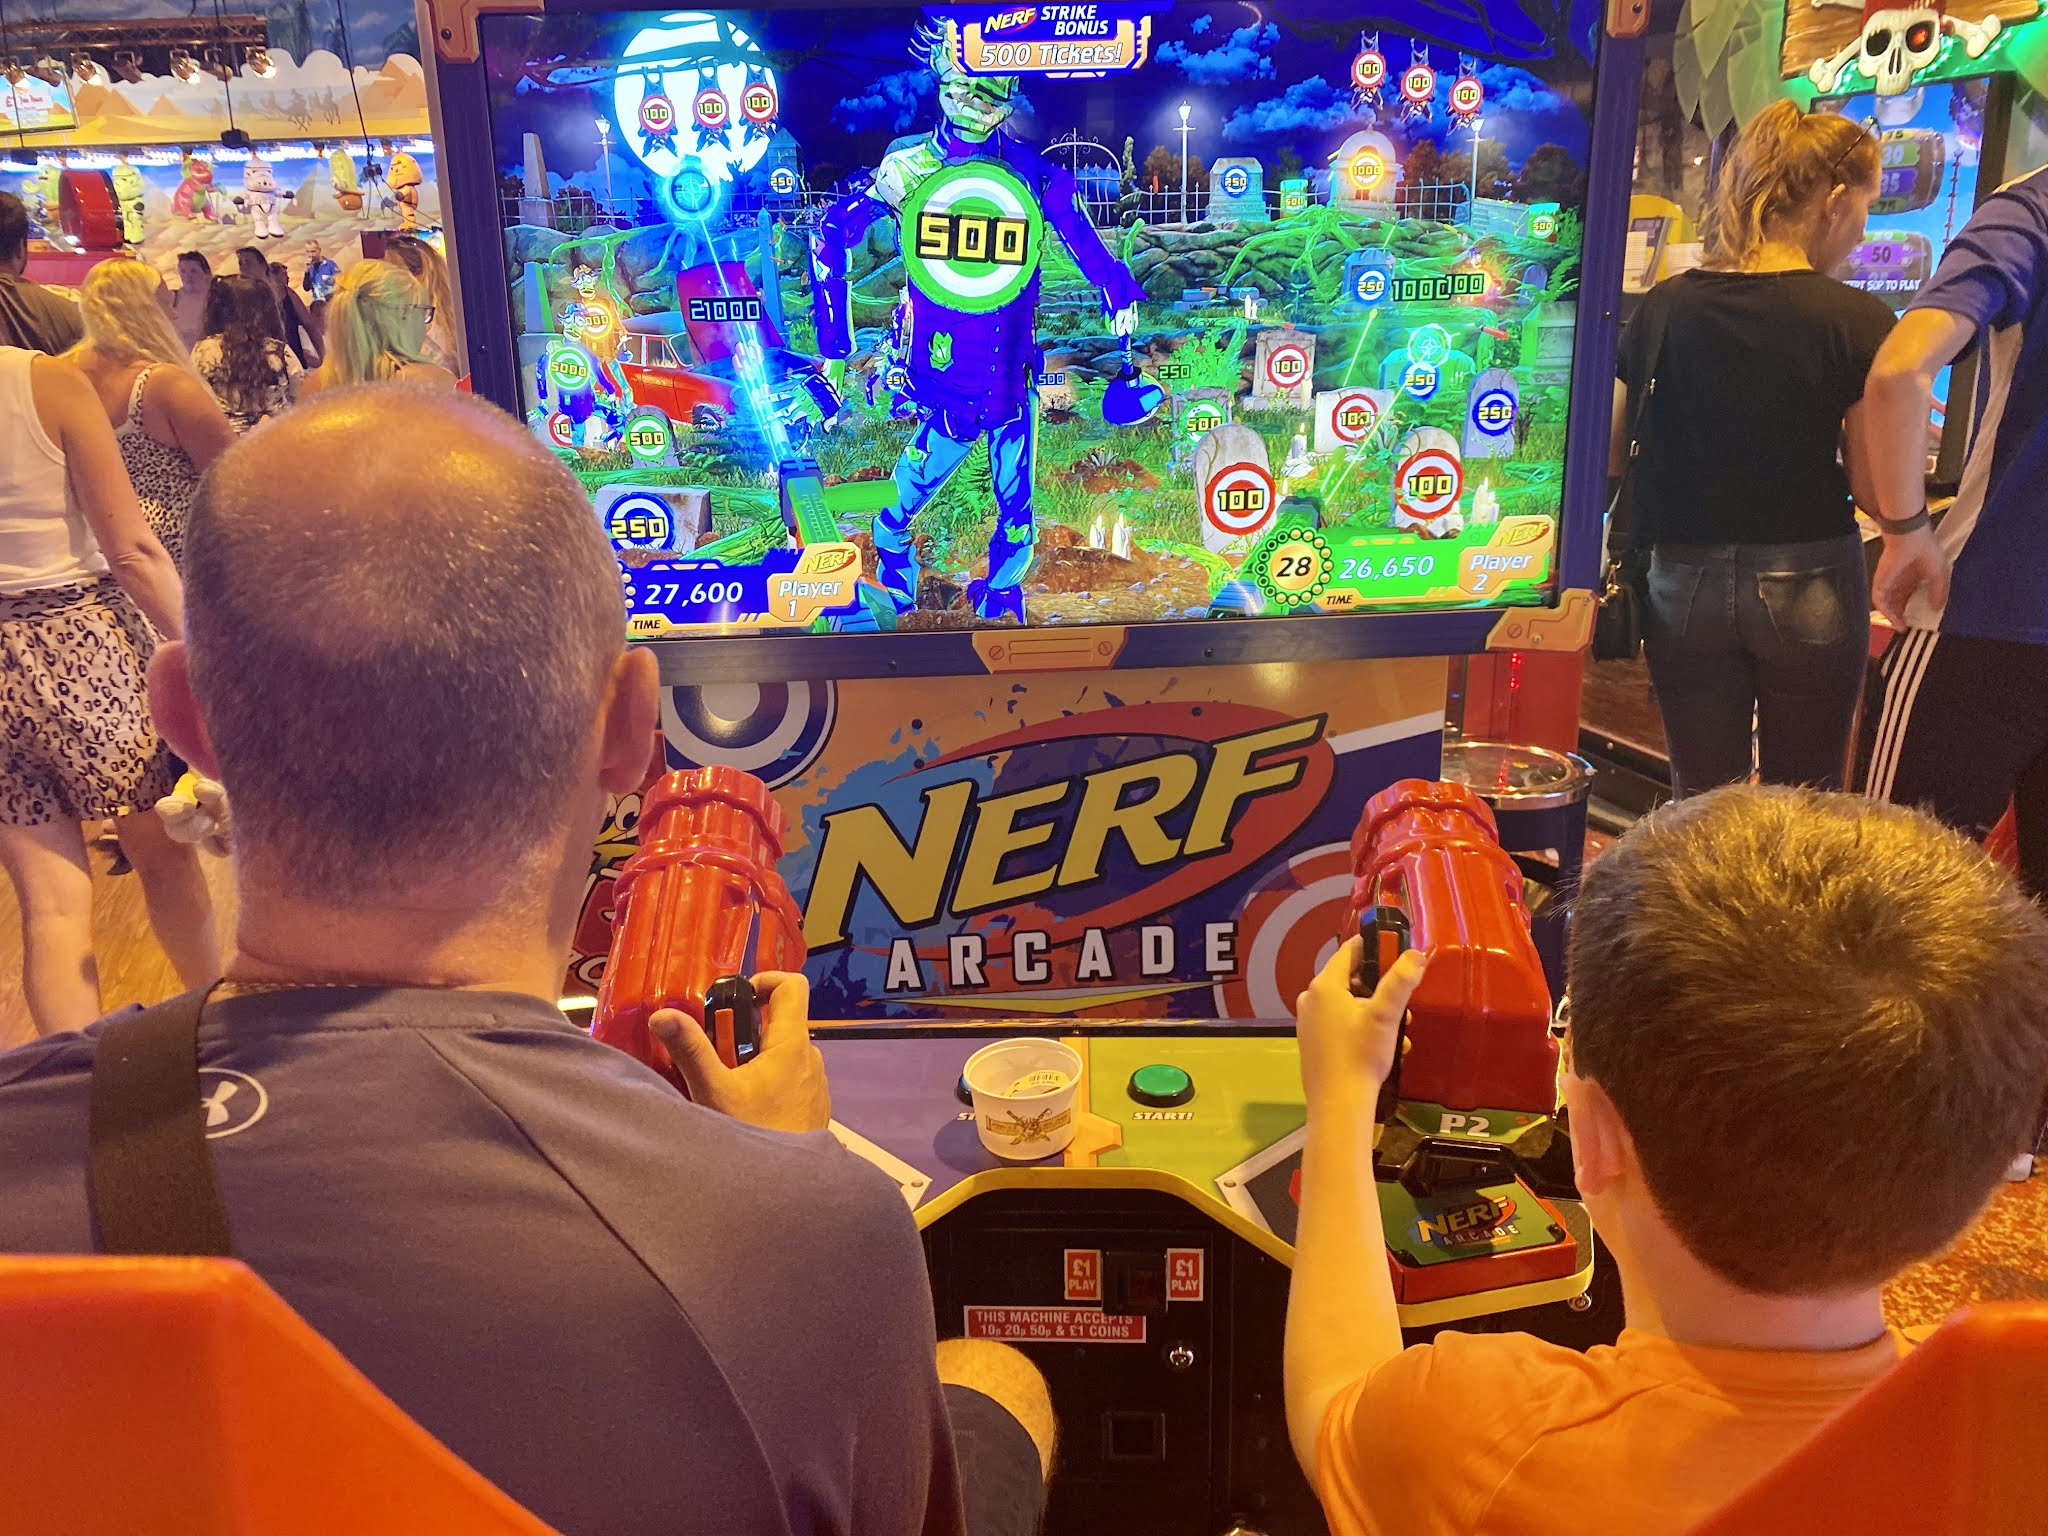 playing Nerf game in arcade